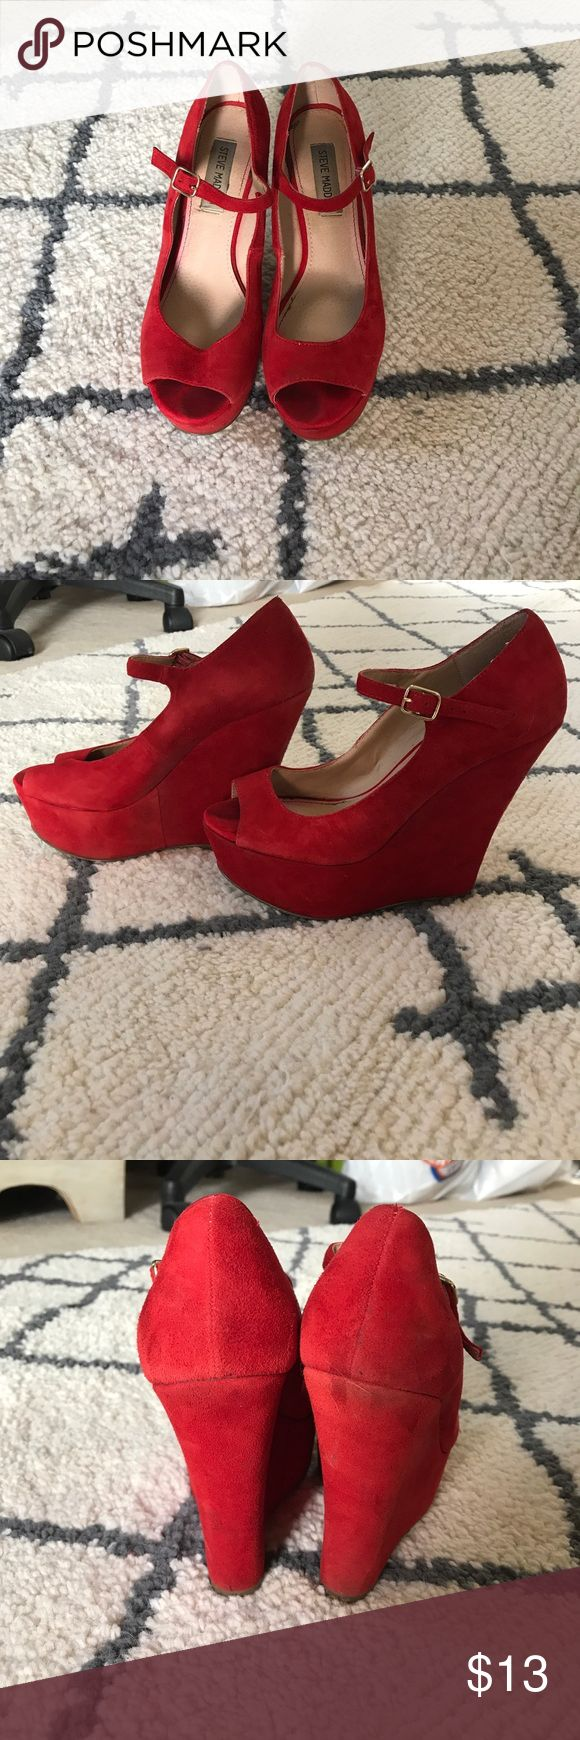 Steve Madden Red Platform Wedges Super cute suede red platform wedges! Perfect to dress up a pair of skinnys or a simple dress! Haven't worn them in awhile, so selling them! Steve Madden Shoes Wedges